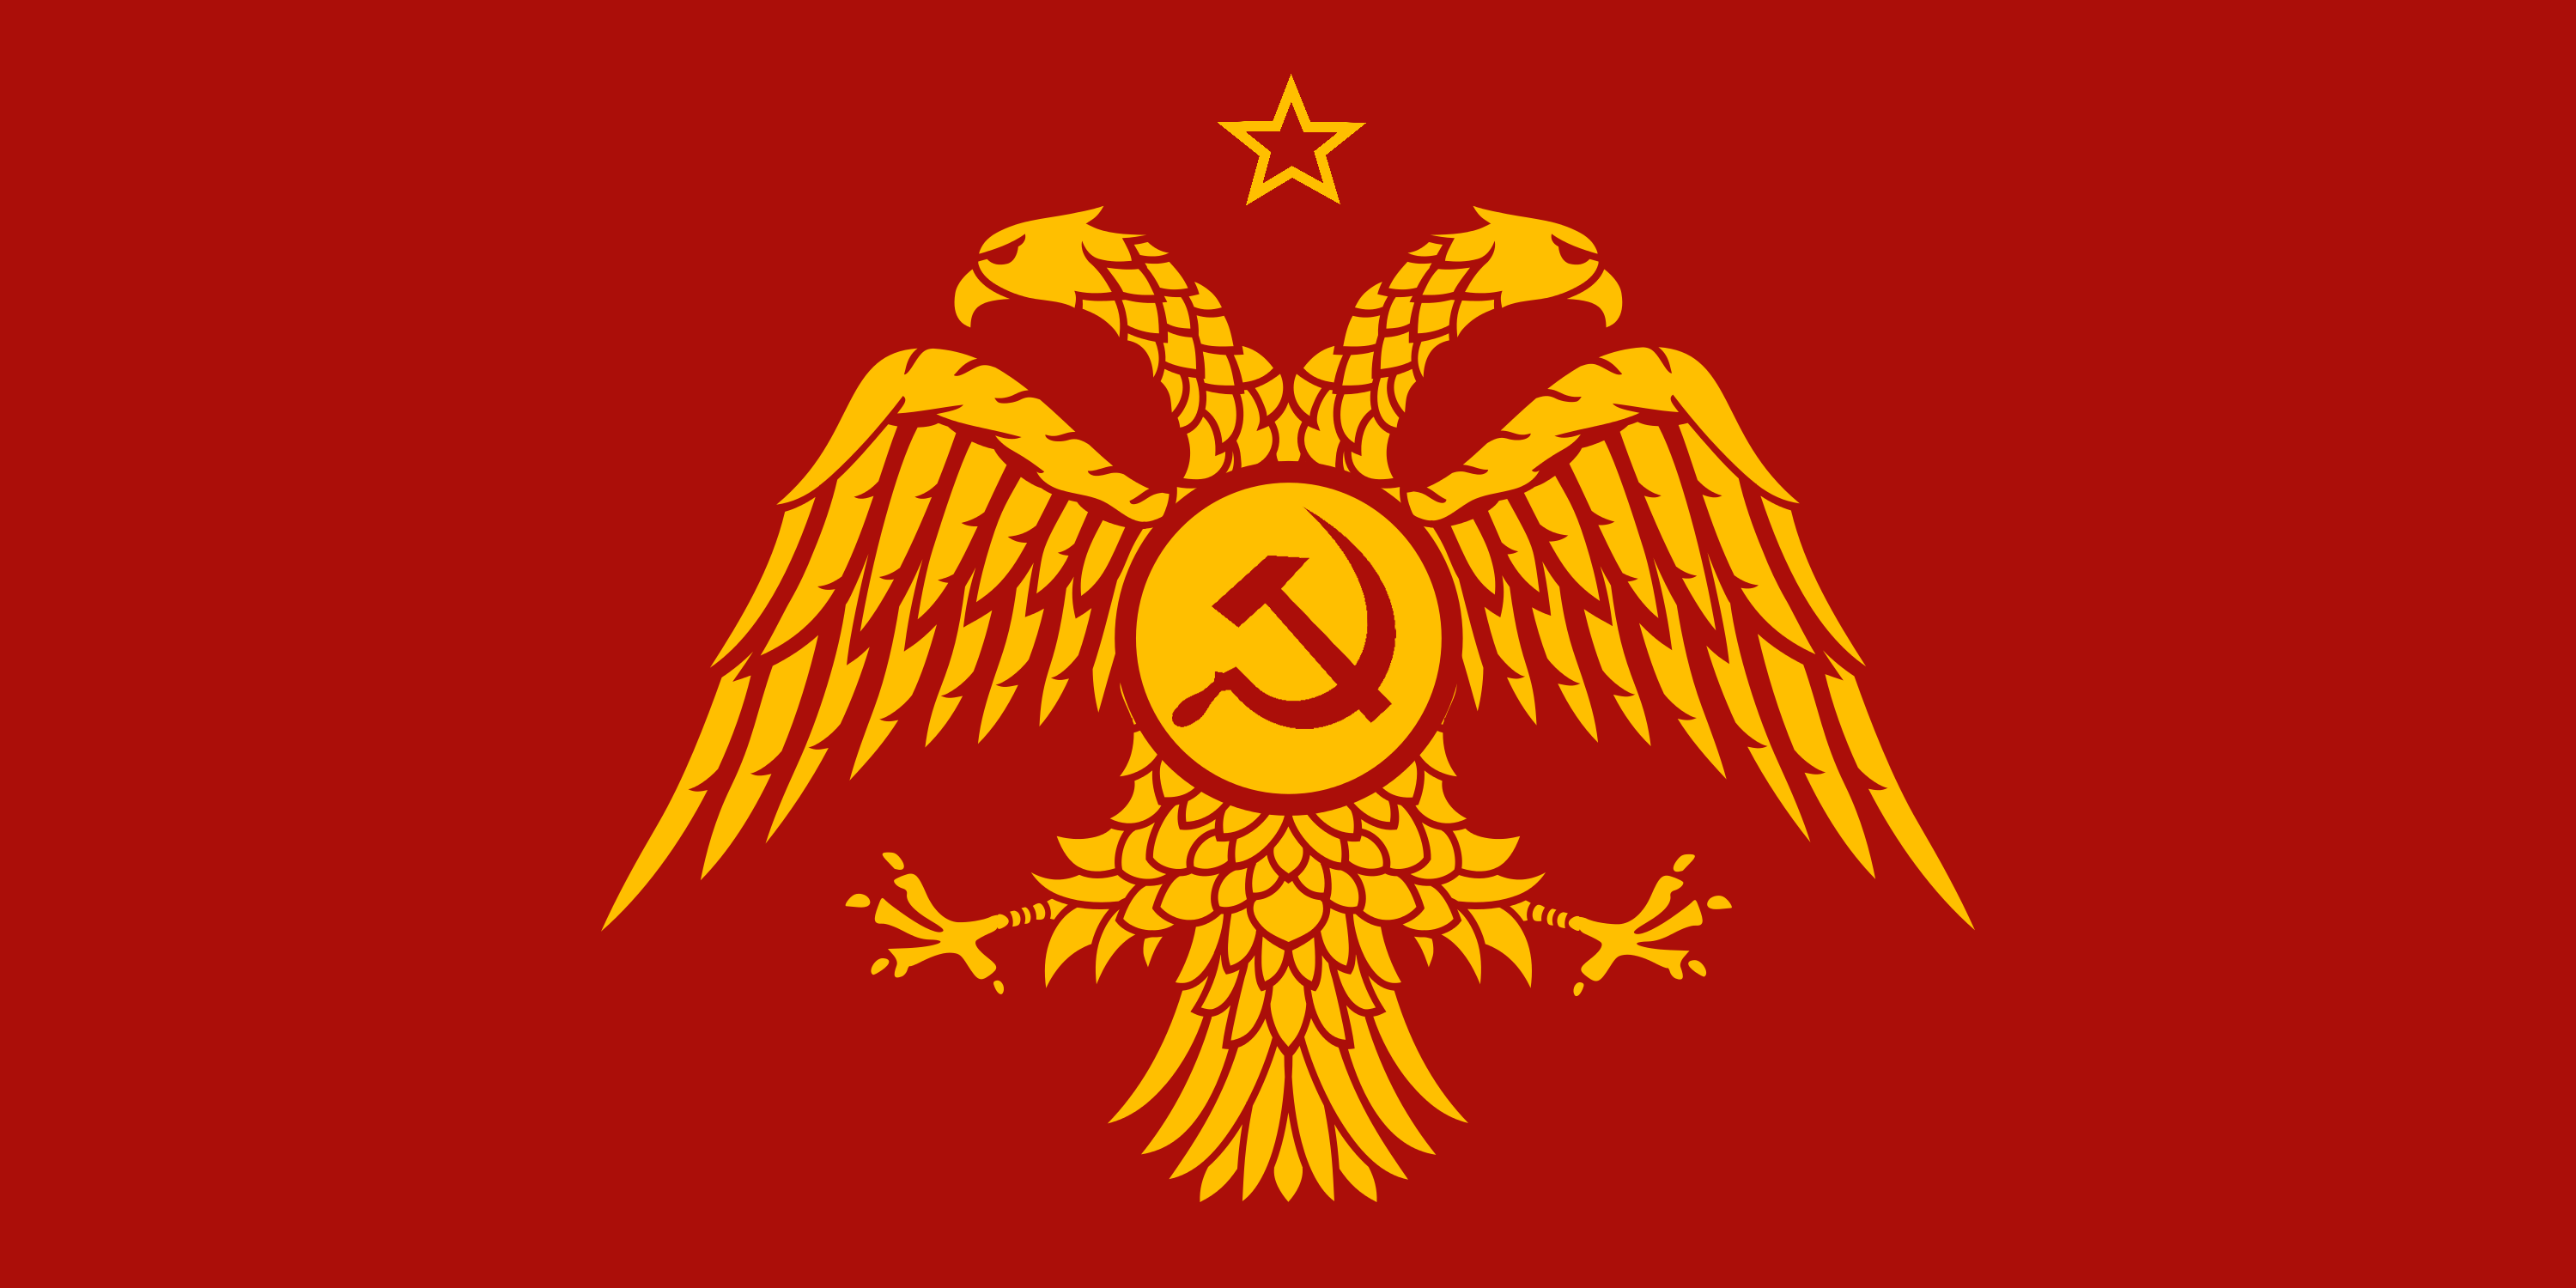 This Is The Symbol For Communism Which Stands For The Working Class